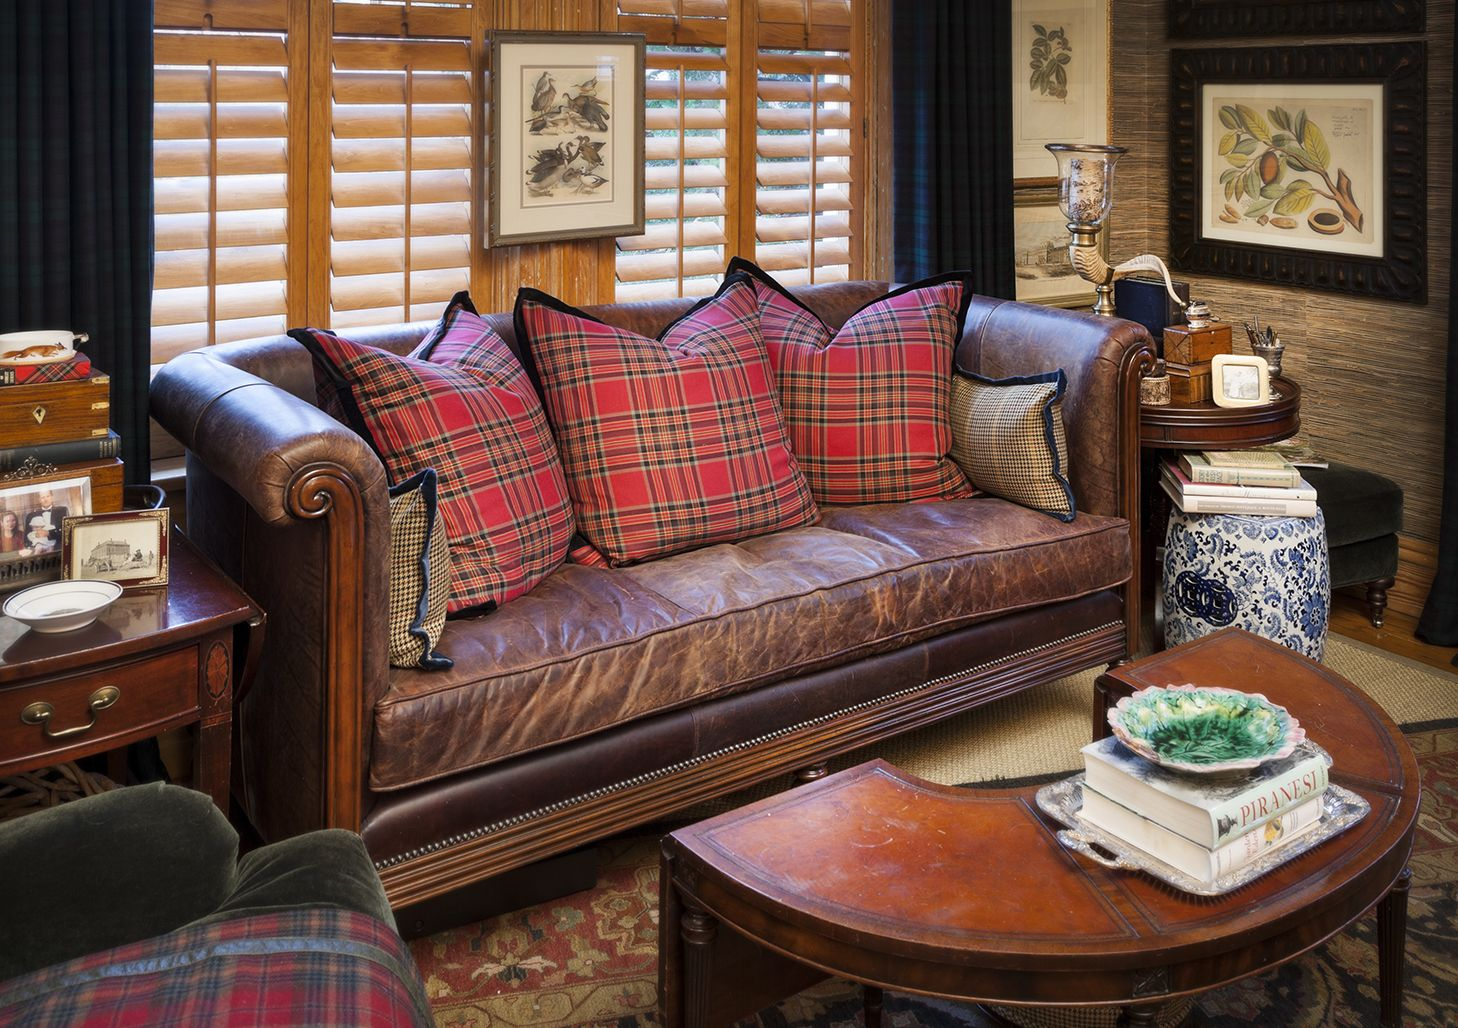 Decorative Pillows For A Leather Couch : Classic brown leather sofa/settee with single seat cushion and tartan throw pillows - Nell Hill ...